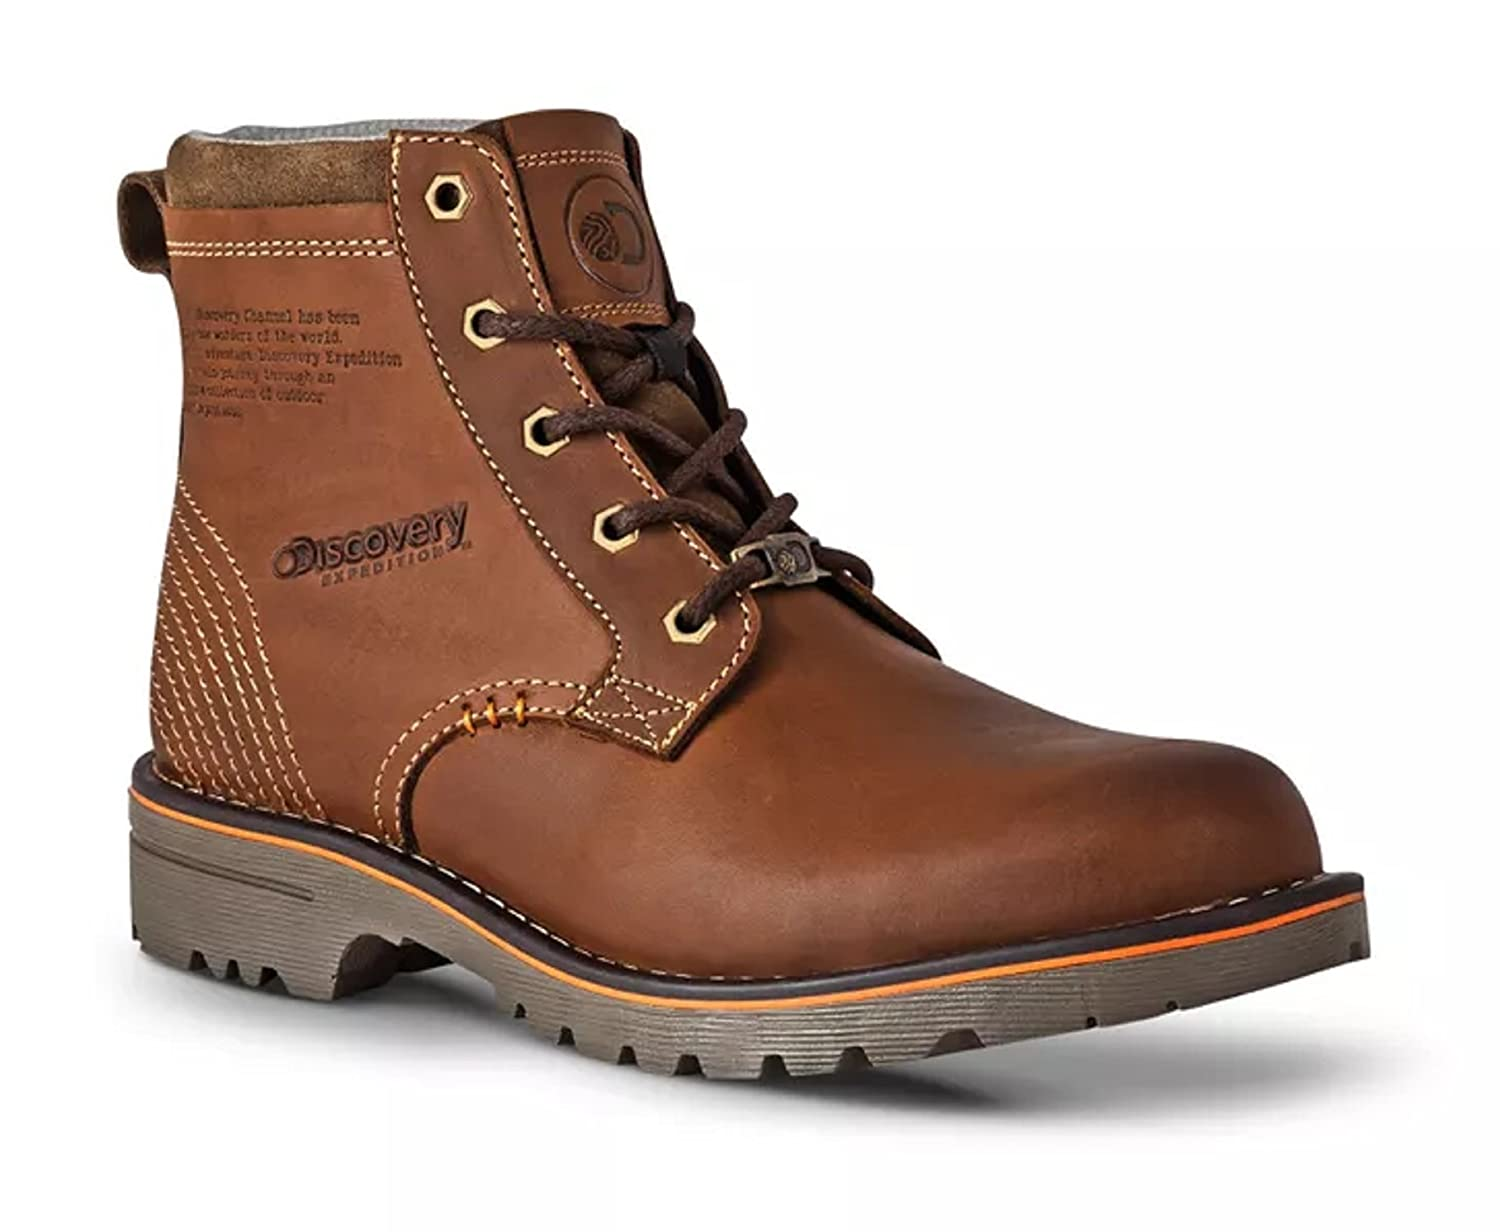 14c6ed1e142 Discovery Expedition Men s Leather Lace-Up Cushioned Casual Outdoors Boot  best